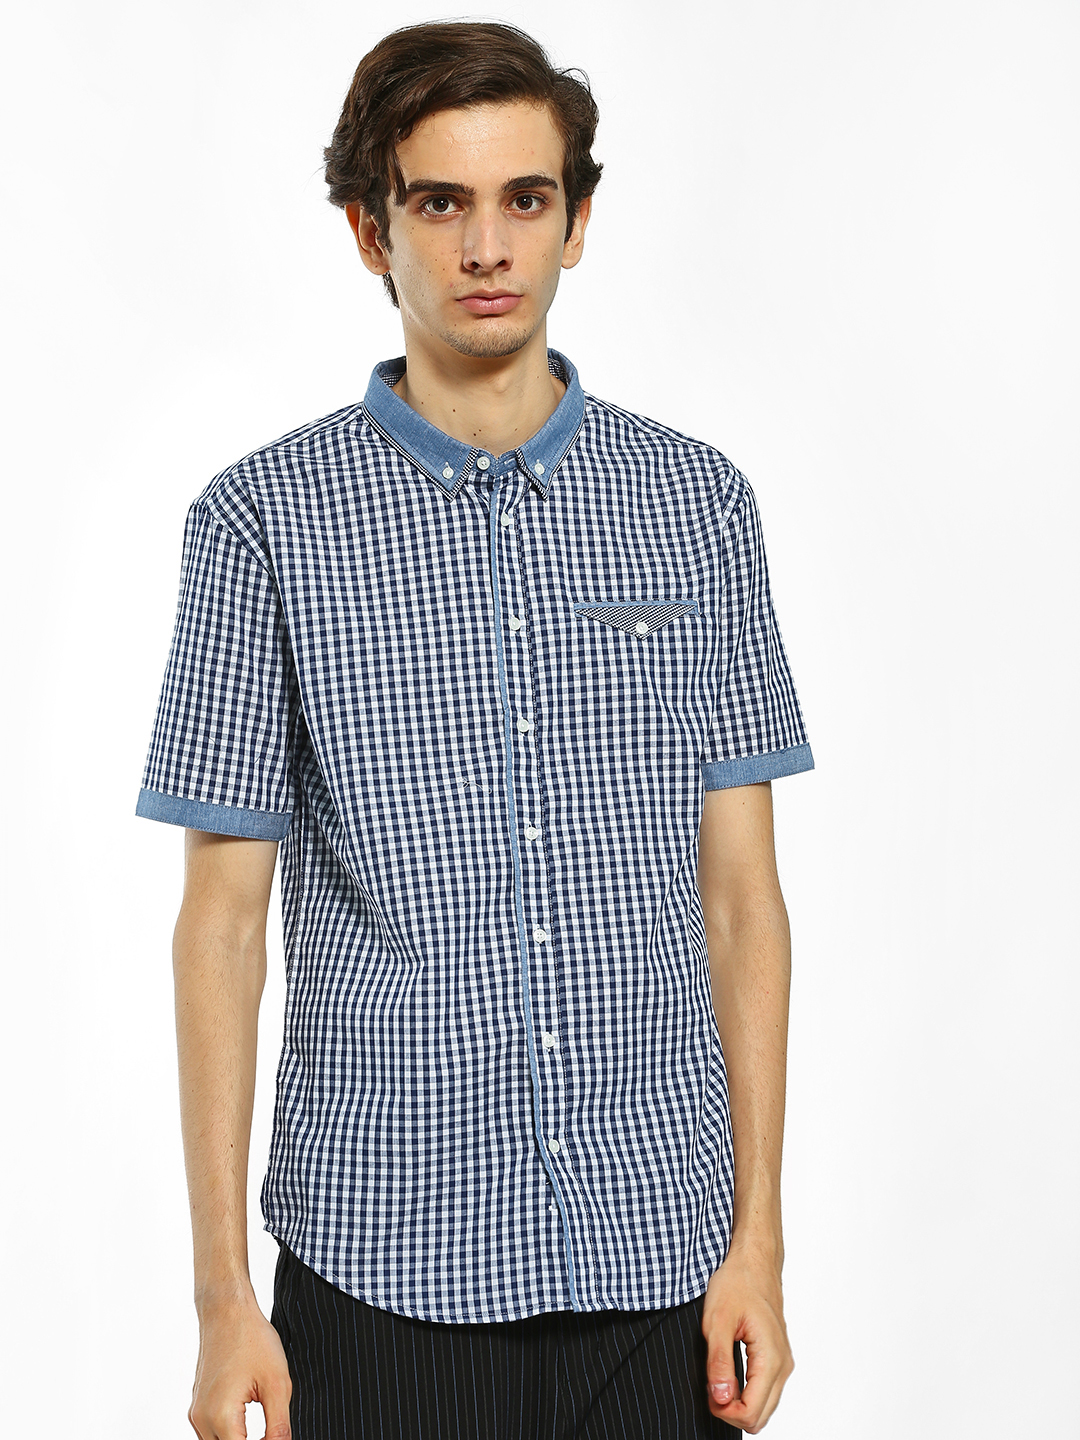 Brave Soul Blue Gingham Check Short Sleeve Shirt 1